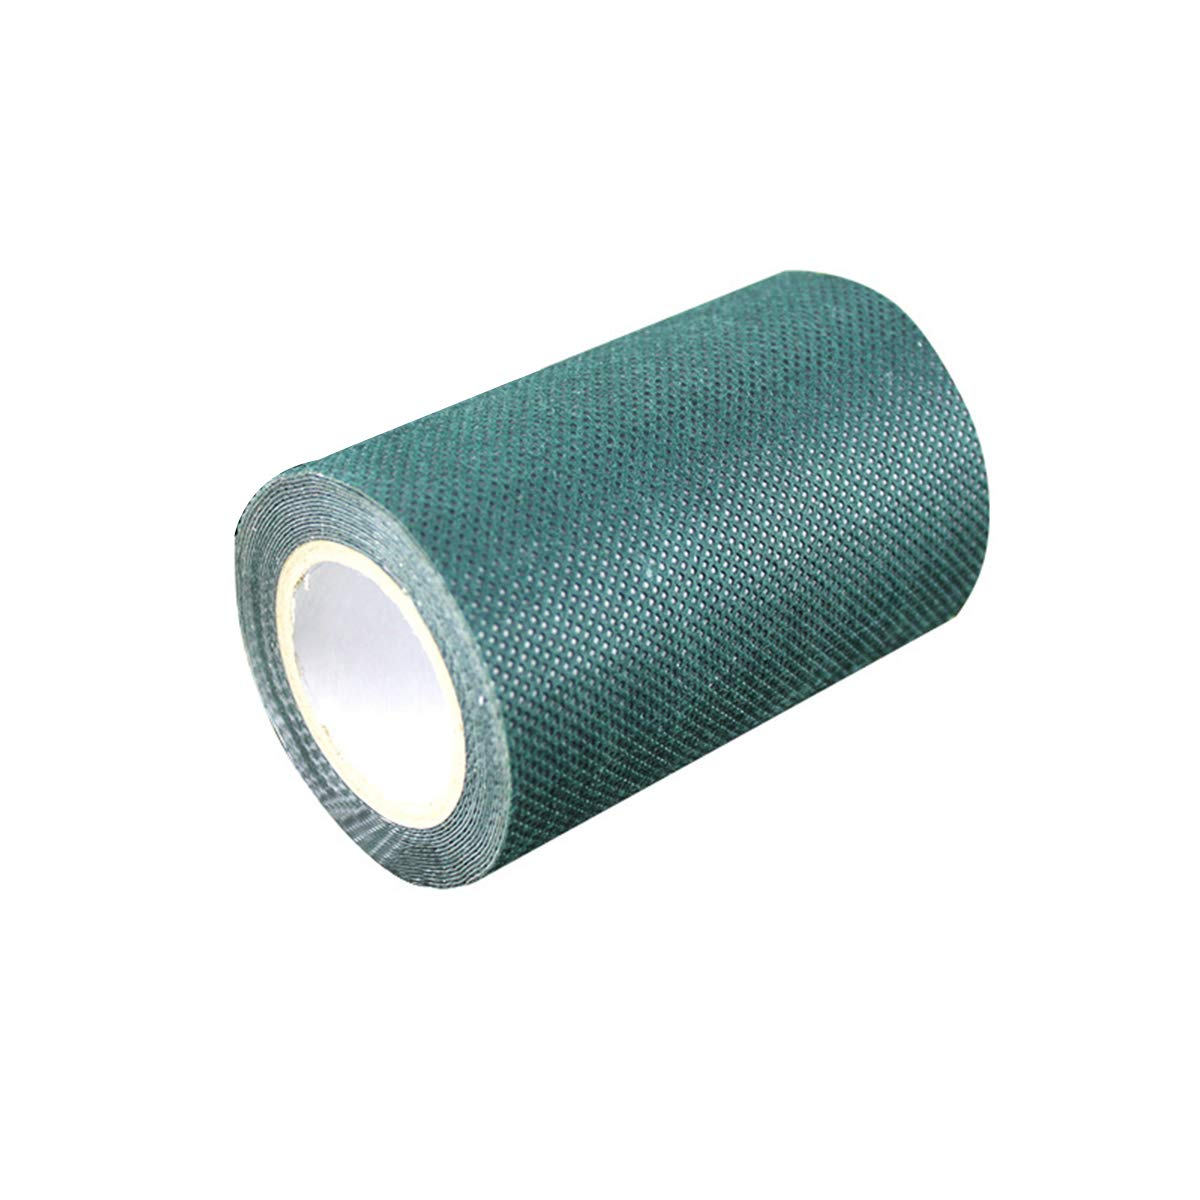 OUNONA Artificial Grass Tape Self-adhesive Seaming Double-sided Turf Tape(Green)